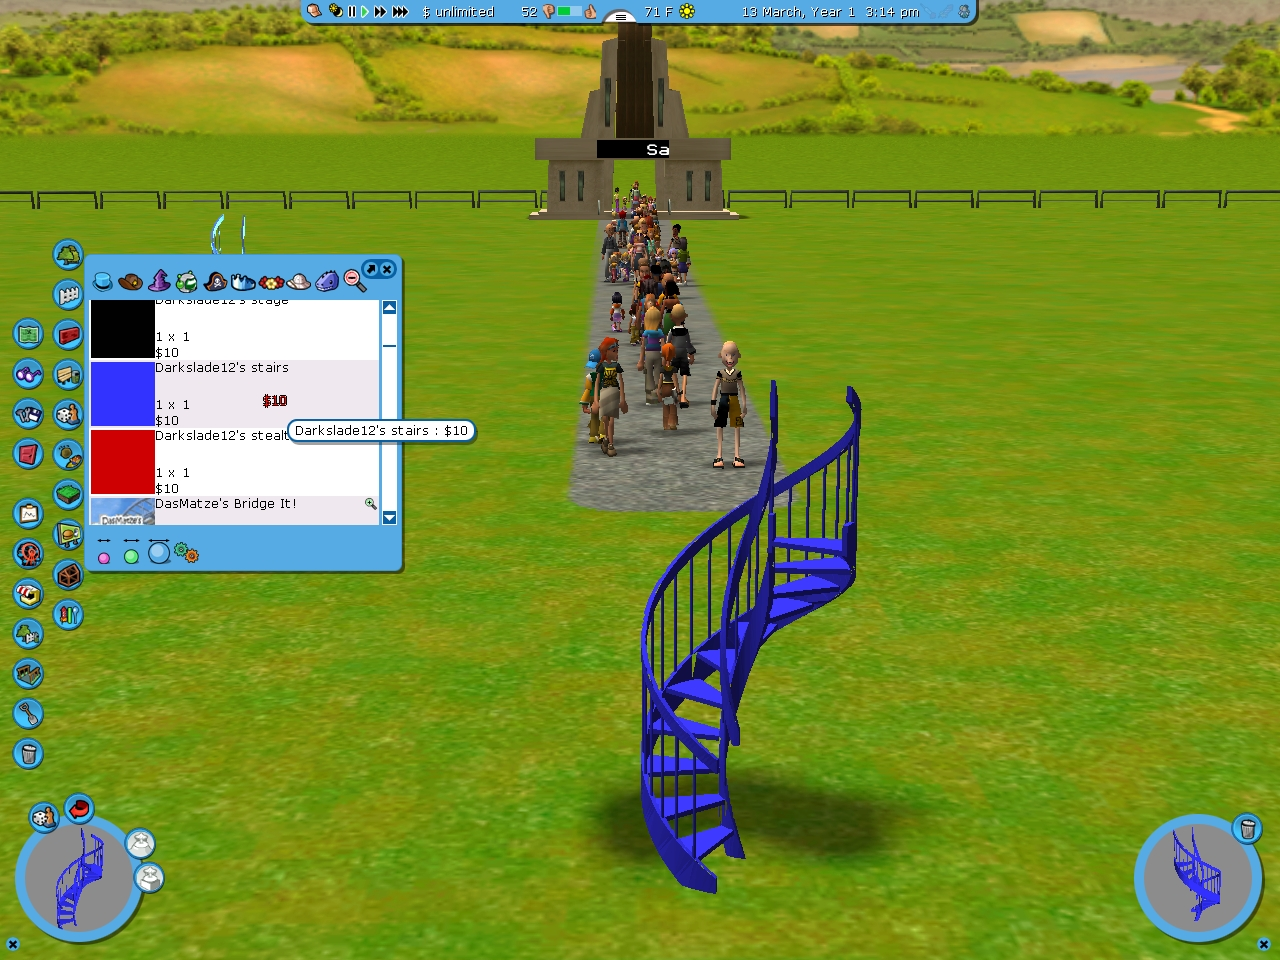 Rct3 nude patch nudes videos